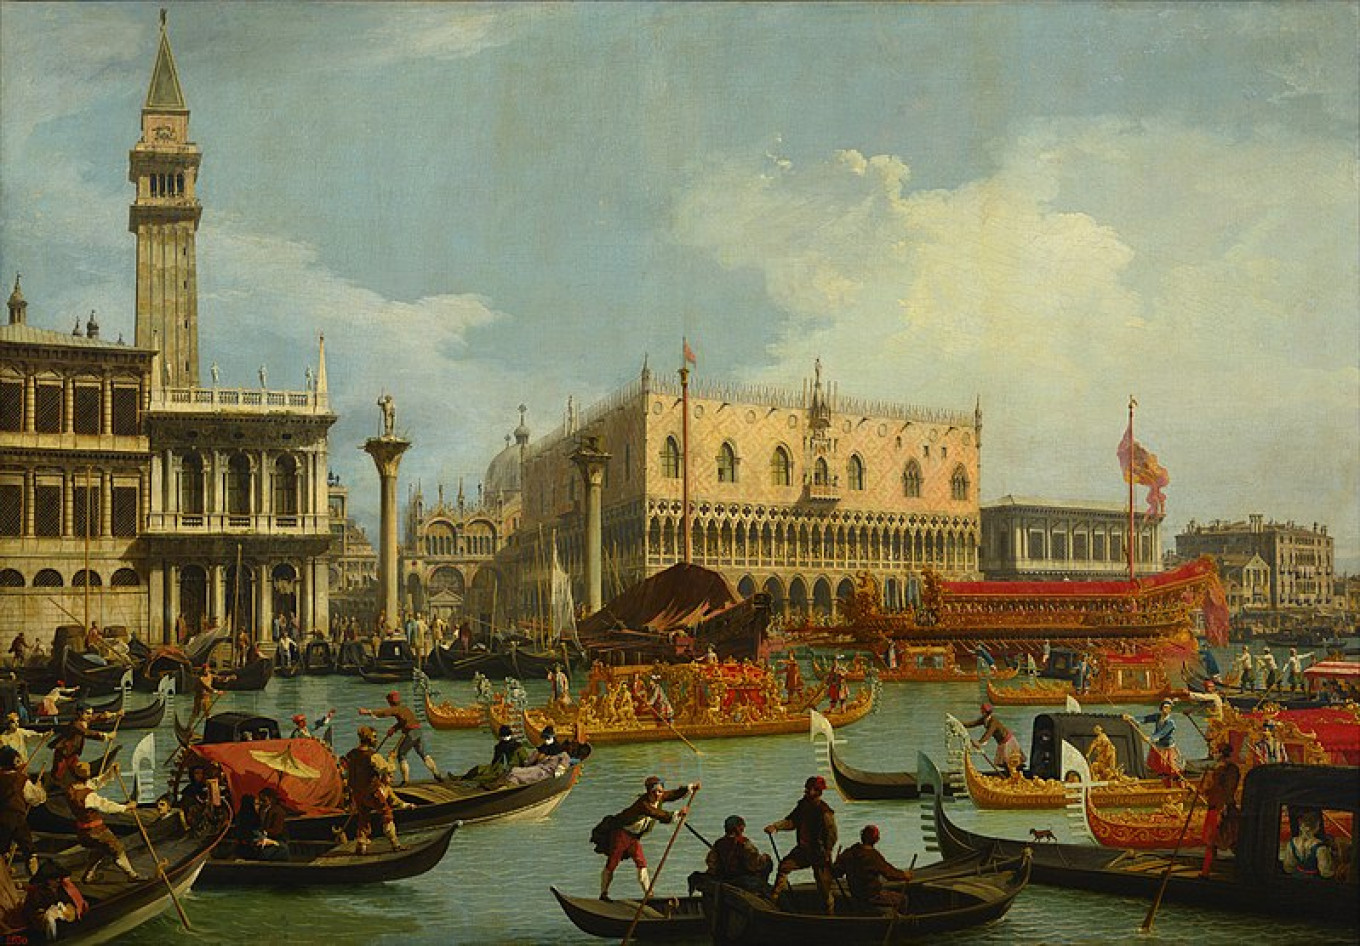 """Canaletto's """"Bucentaur's Return to the Pier by the Palazzo Ducale"""" is one of the real treasures of the show. Wikicommons"""